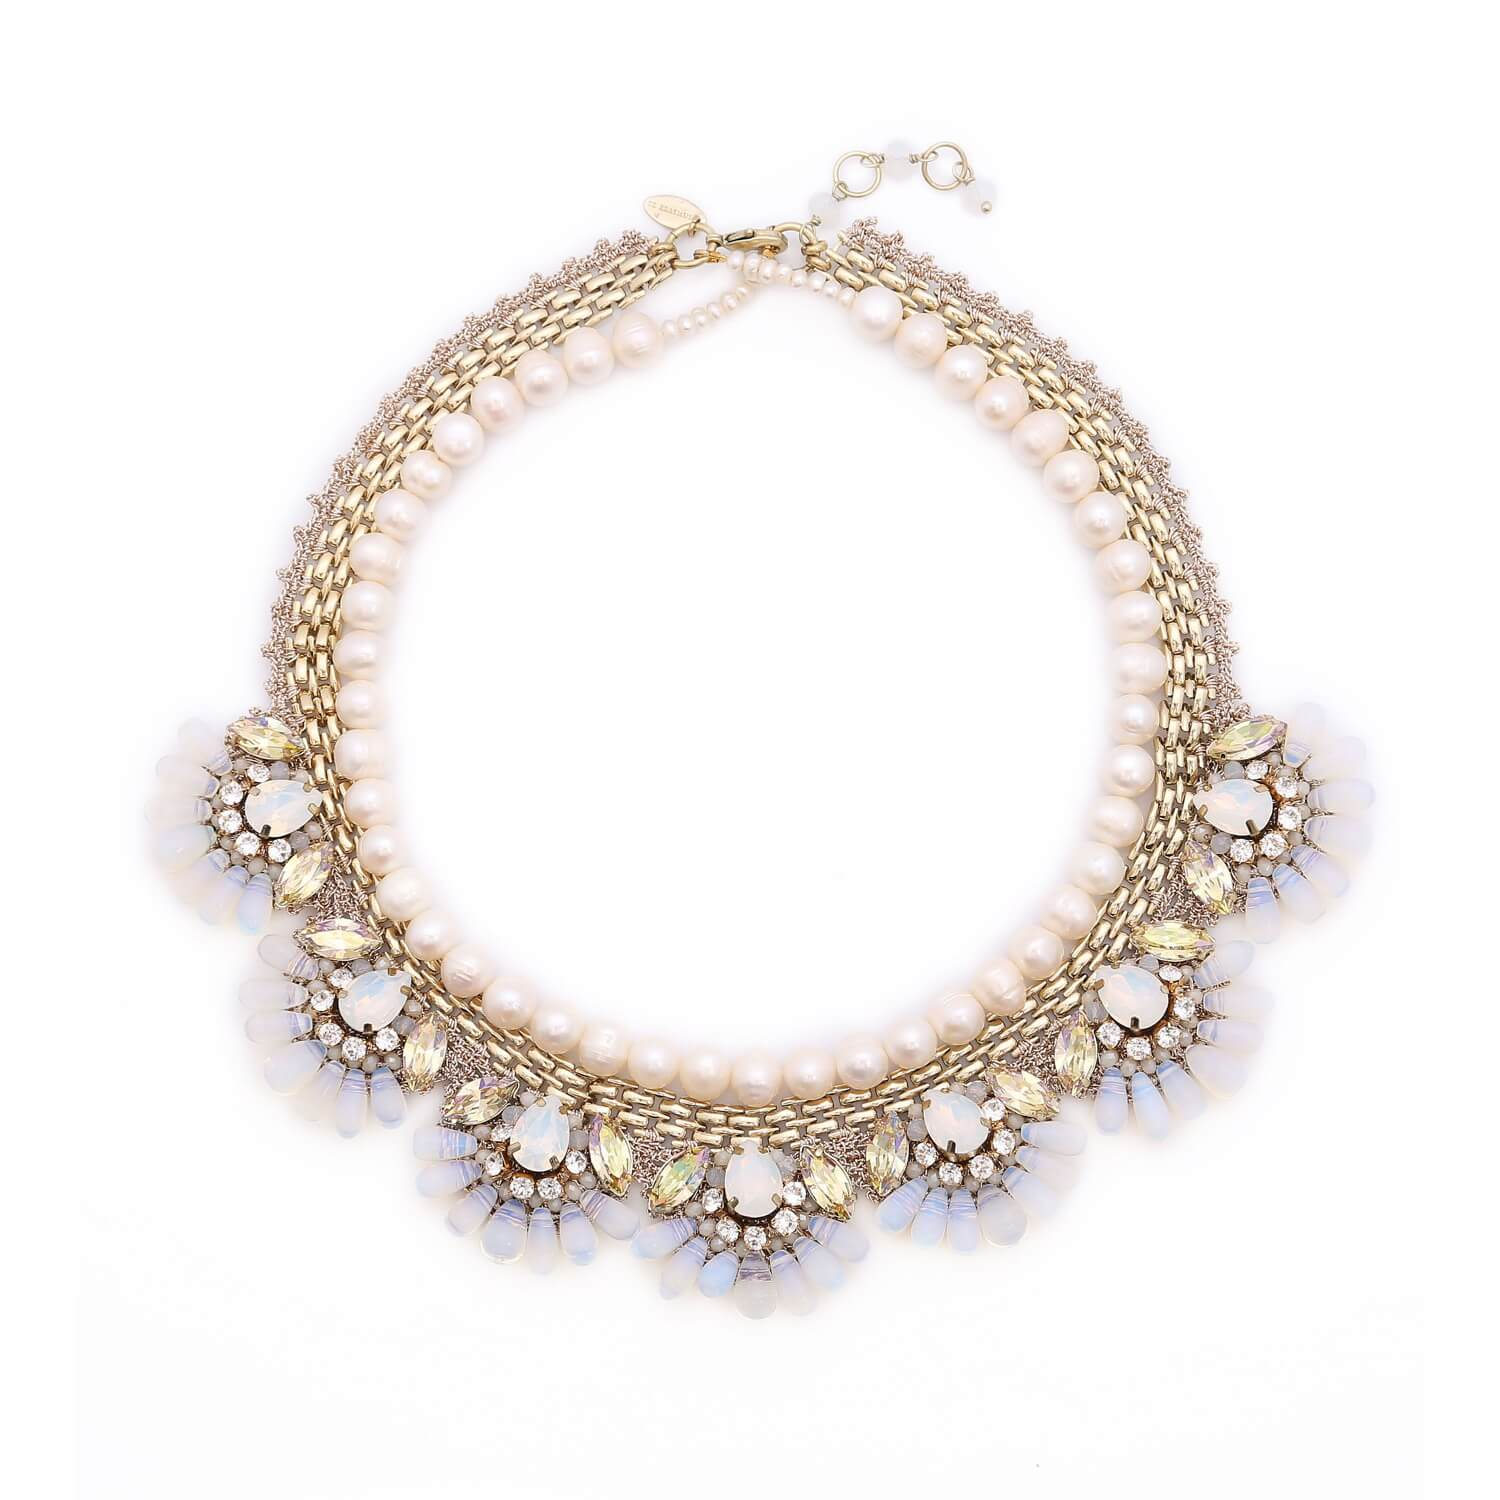 Aphrodite String of Pearls Mermaid Necklace - Ivory Pearl